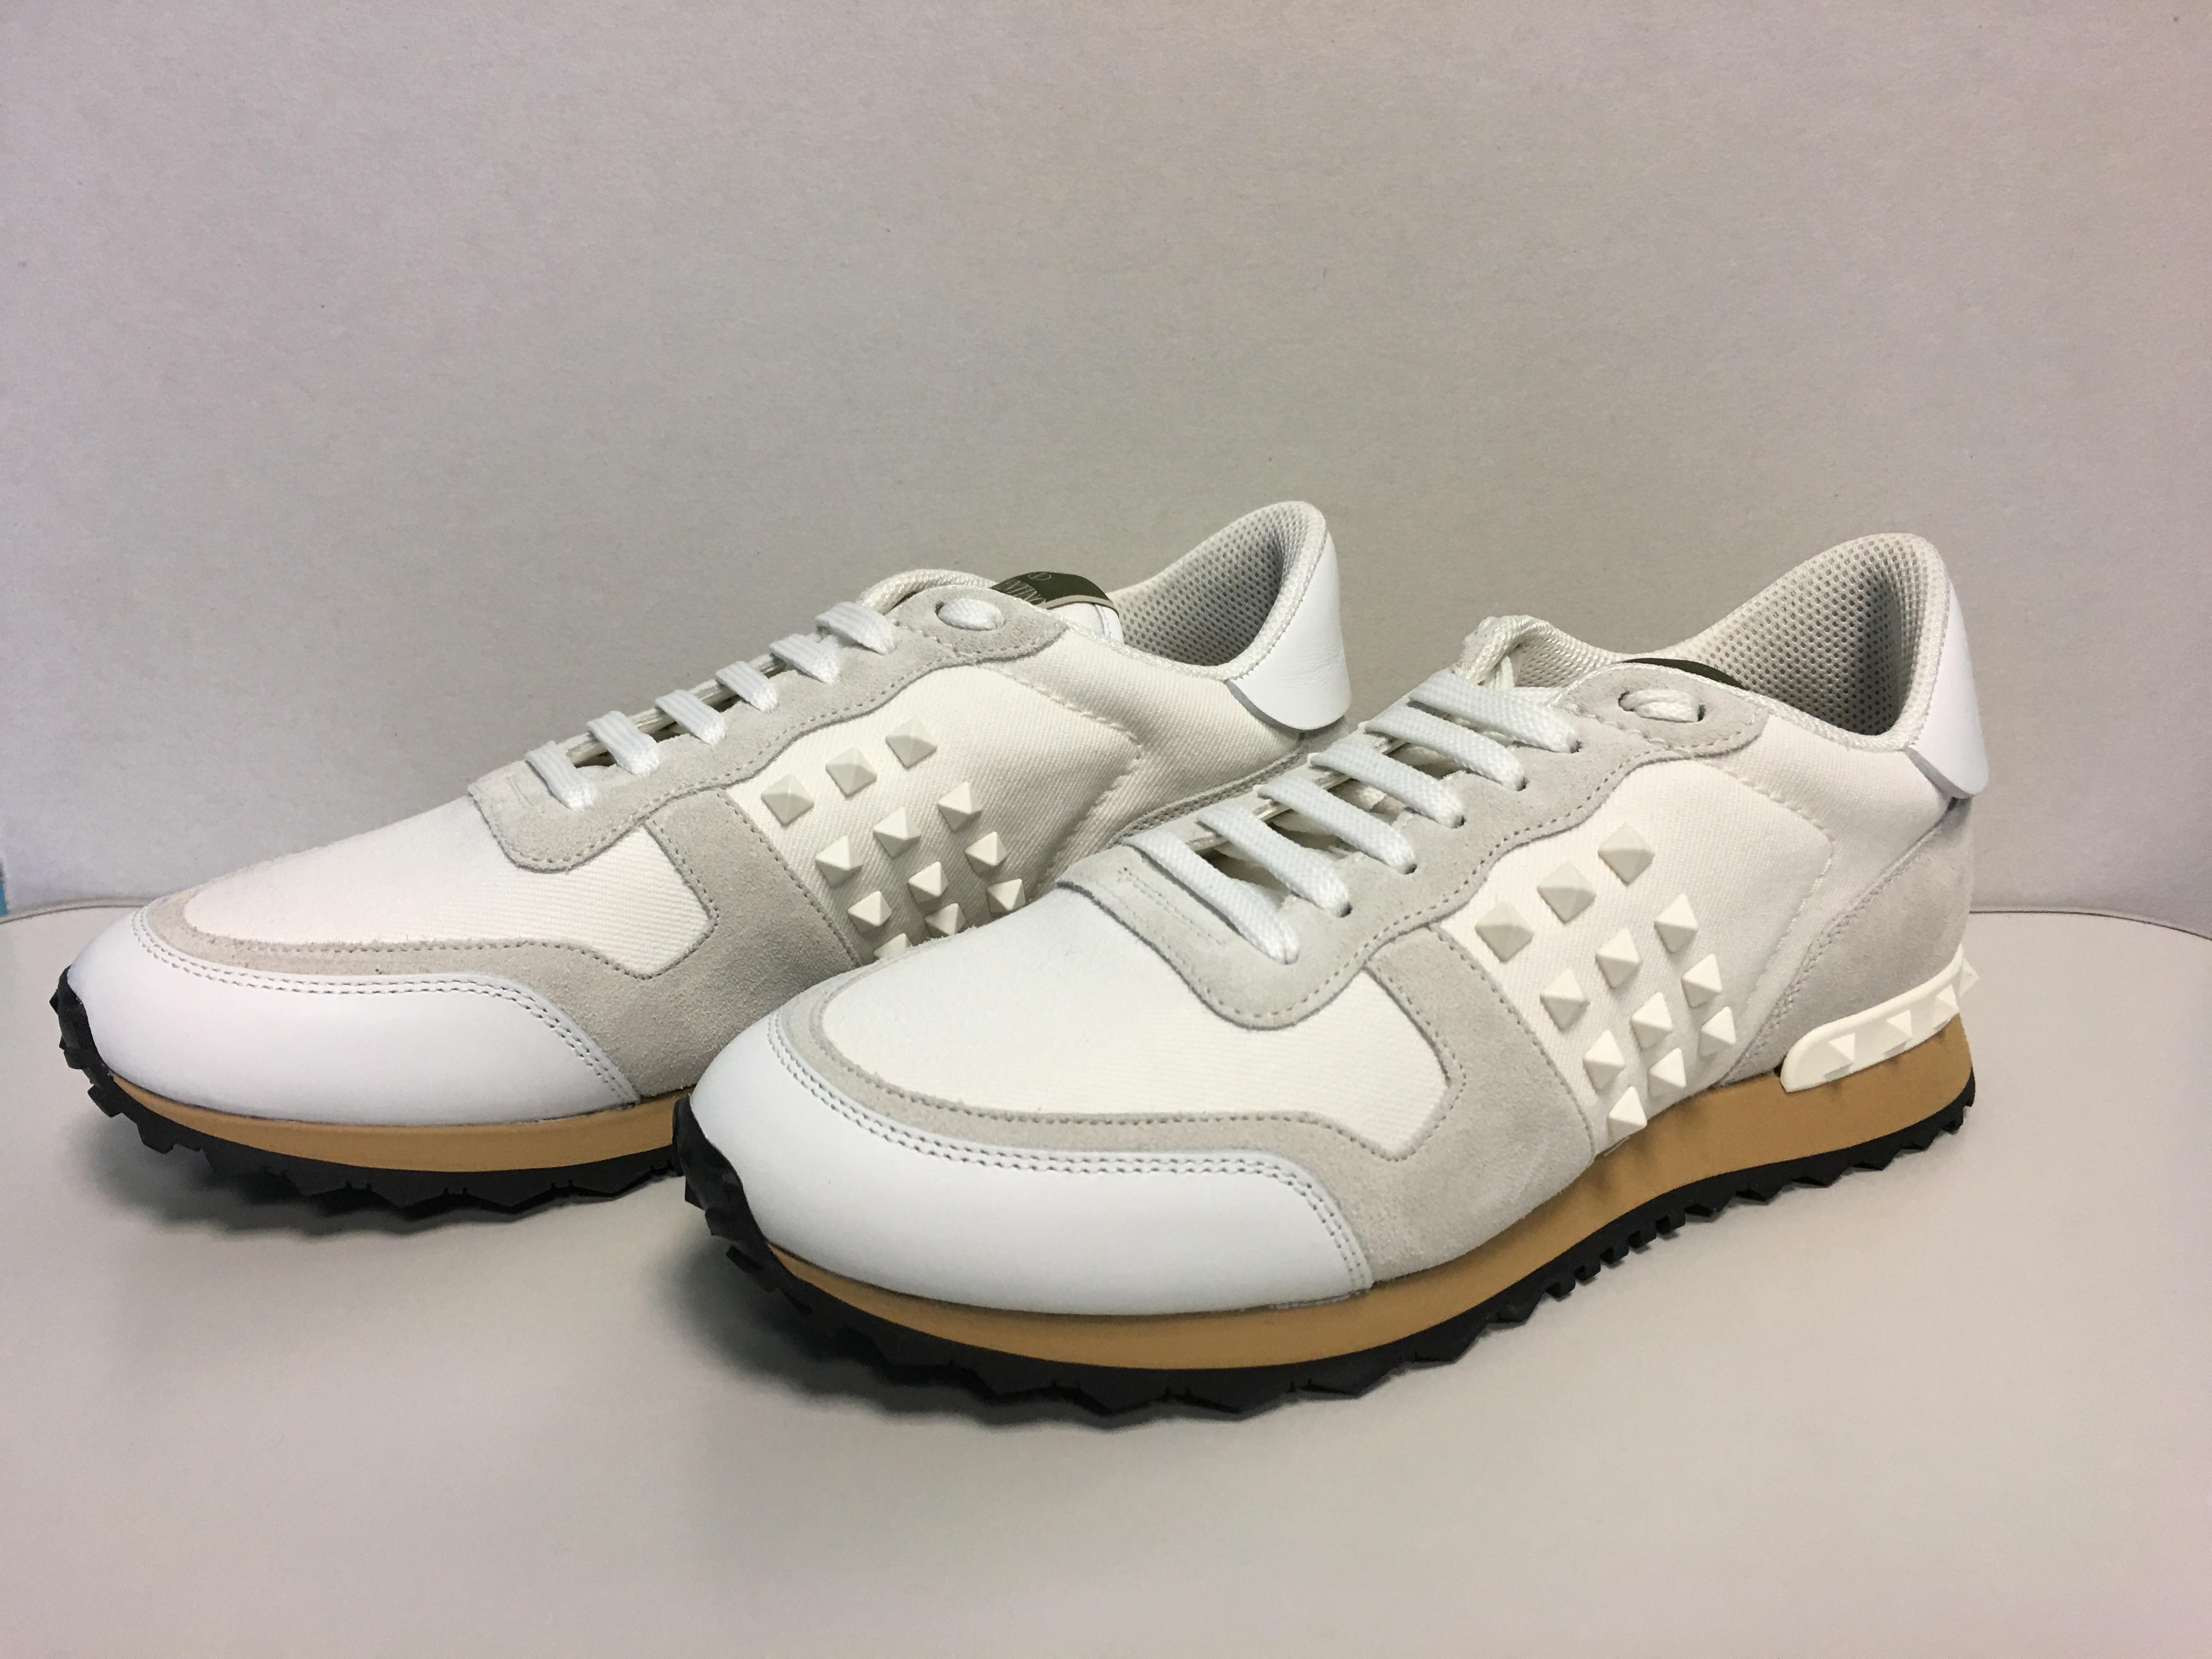 b69309f635ae ... Valentino White Mens Classic Rockrunner Rockrunner Rockrunner Low-top  Mesh and Leather Sneakers Trainer Sneakers ...